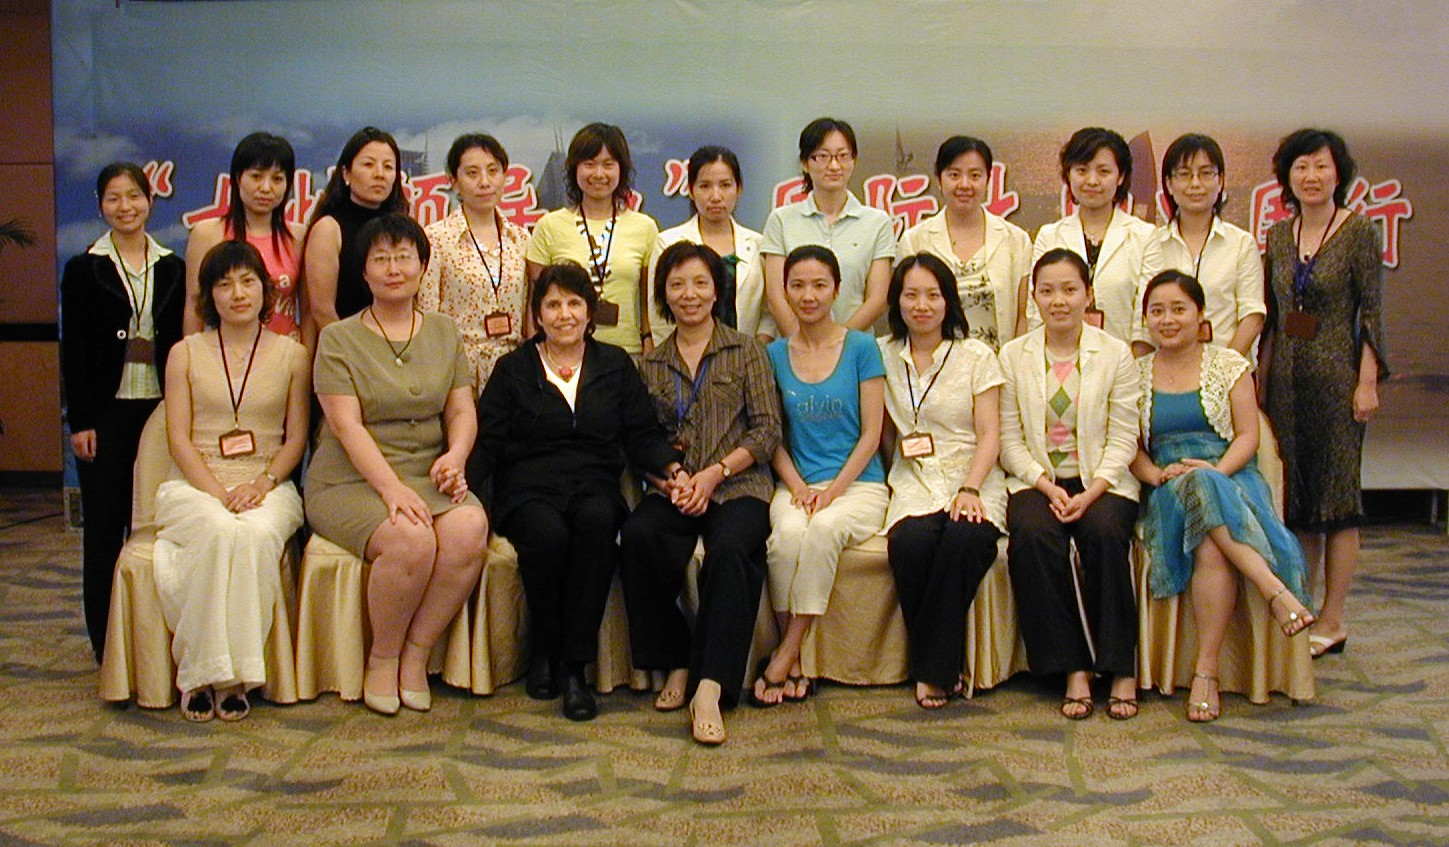 Copy of Participants Women's Leadership Conference Shanghai